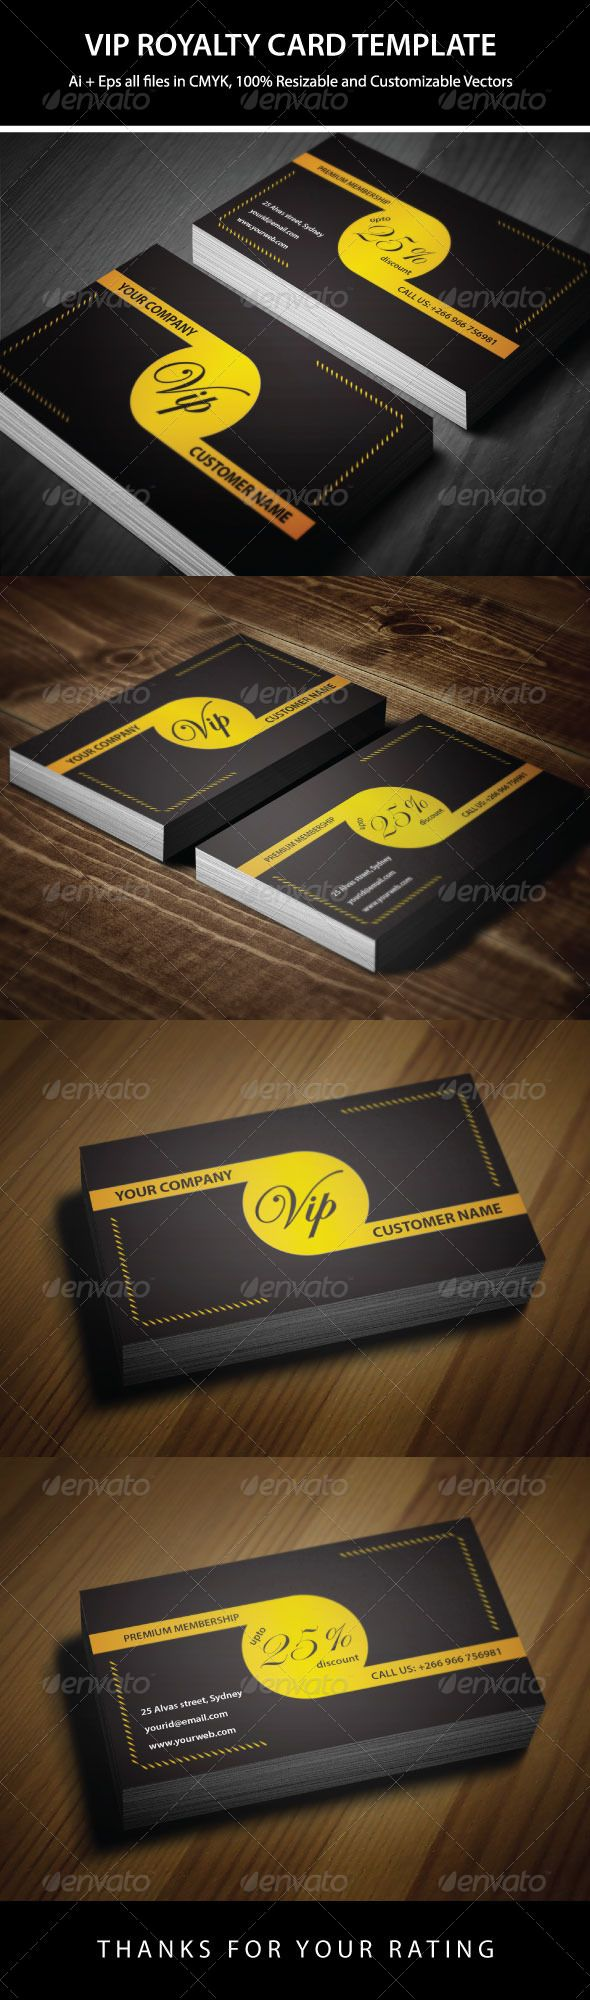 An excellent VIP loyalty card template which is suitable for any club, restaurant, fashion house or anything related to this.  -